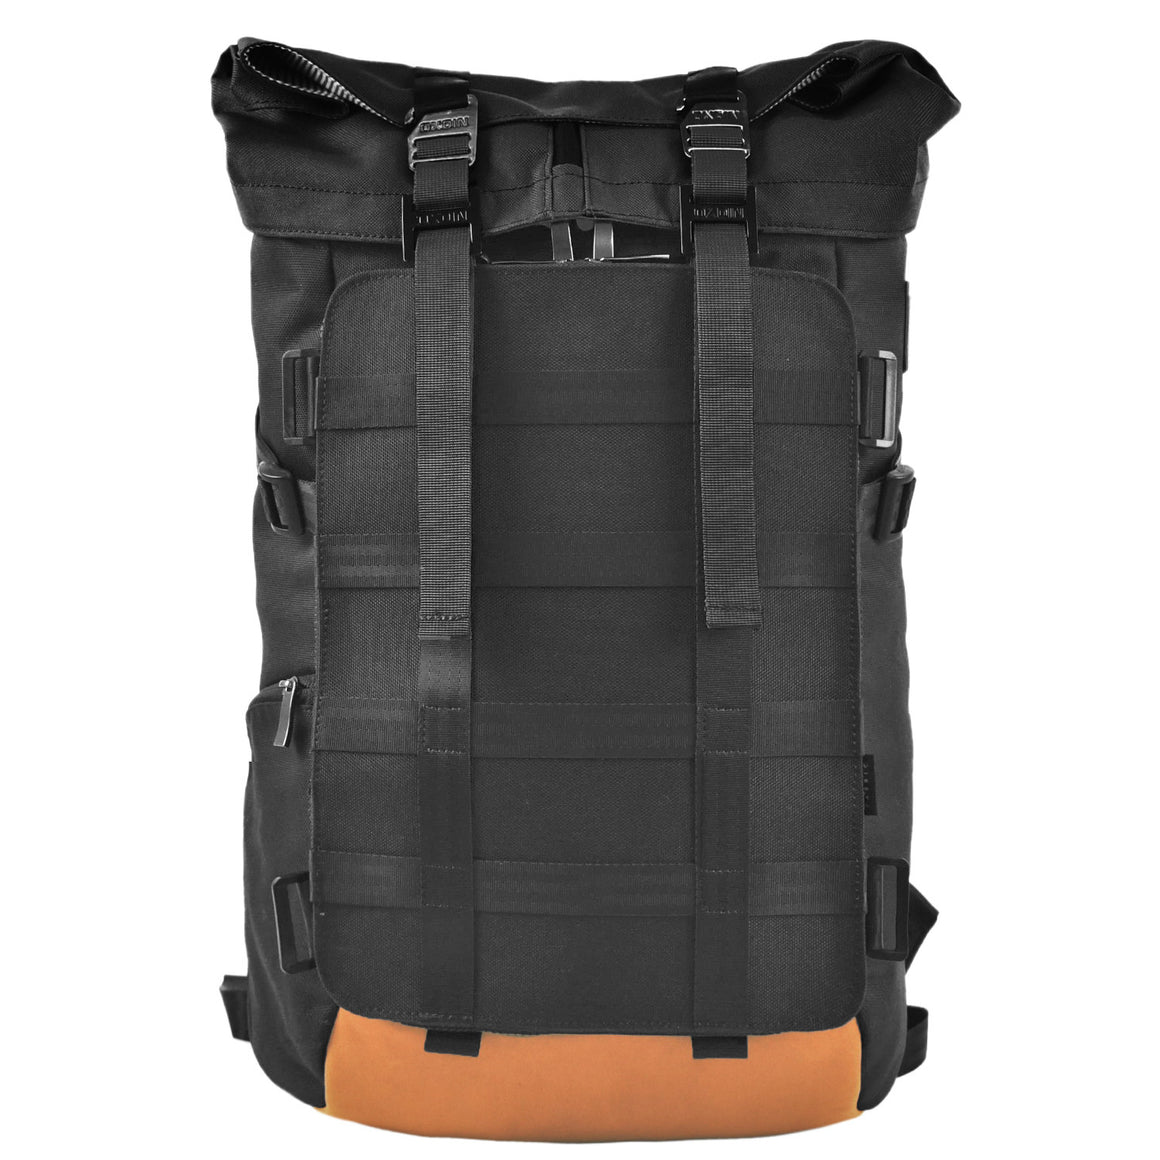 Oxdin Venix Roll-Top Molle Backpack XD-102-4-A-AAAA BLACK